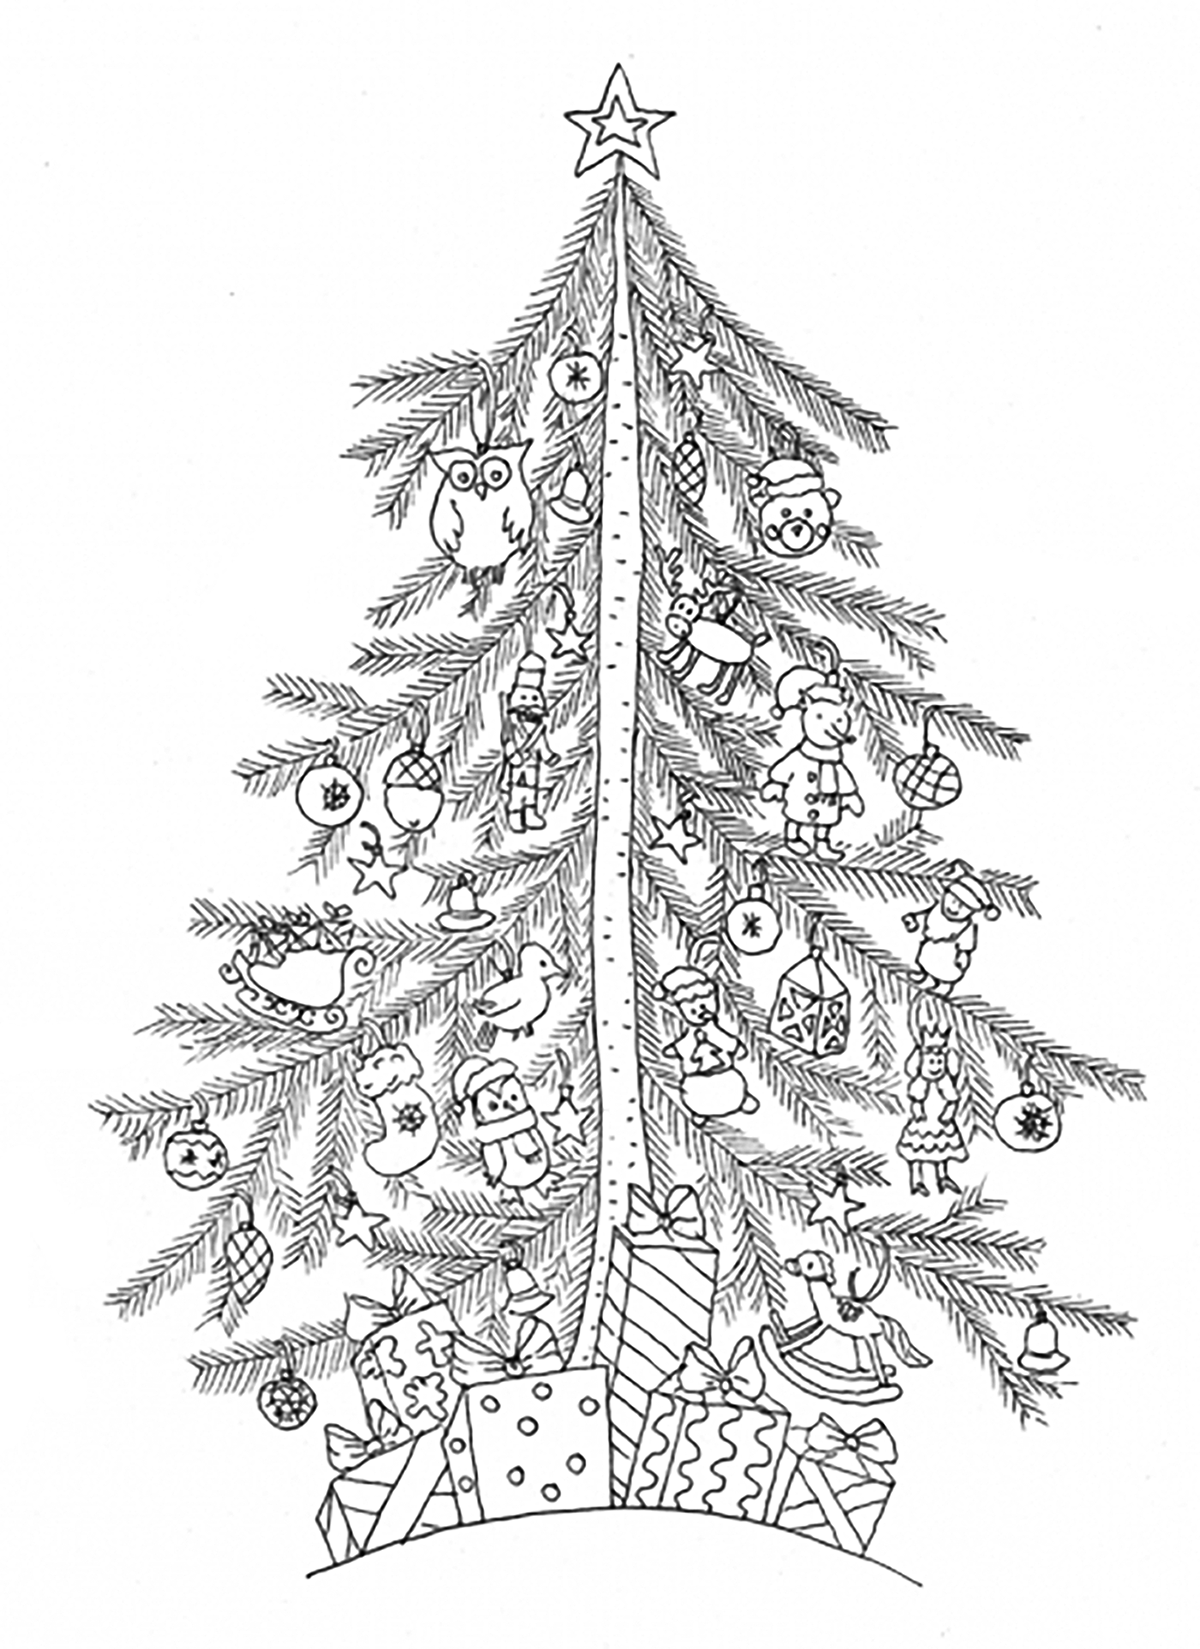 christmas tree coloring page printable craftsactvities and worksheets for preschooltoddler and christmas page coloring printable tree